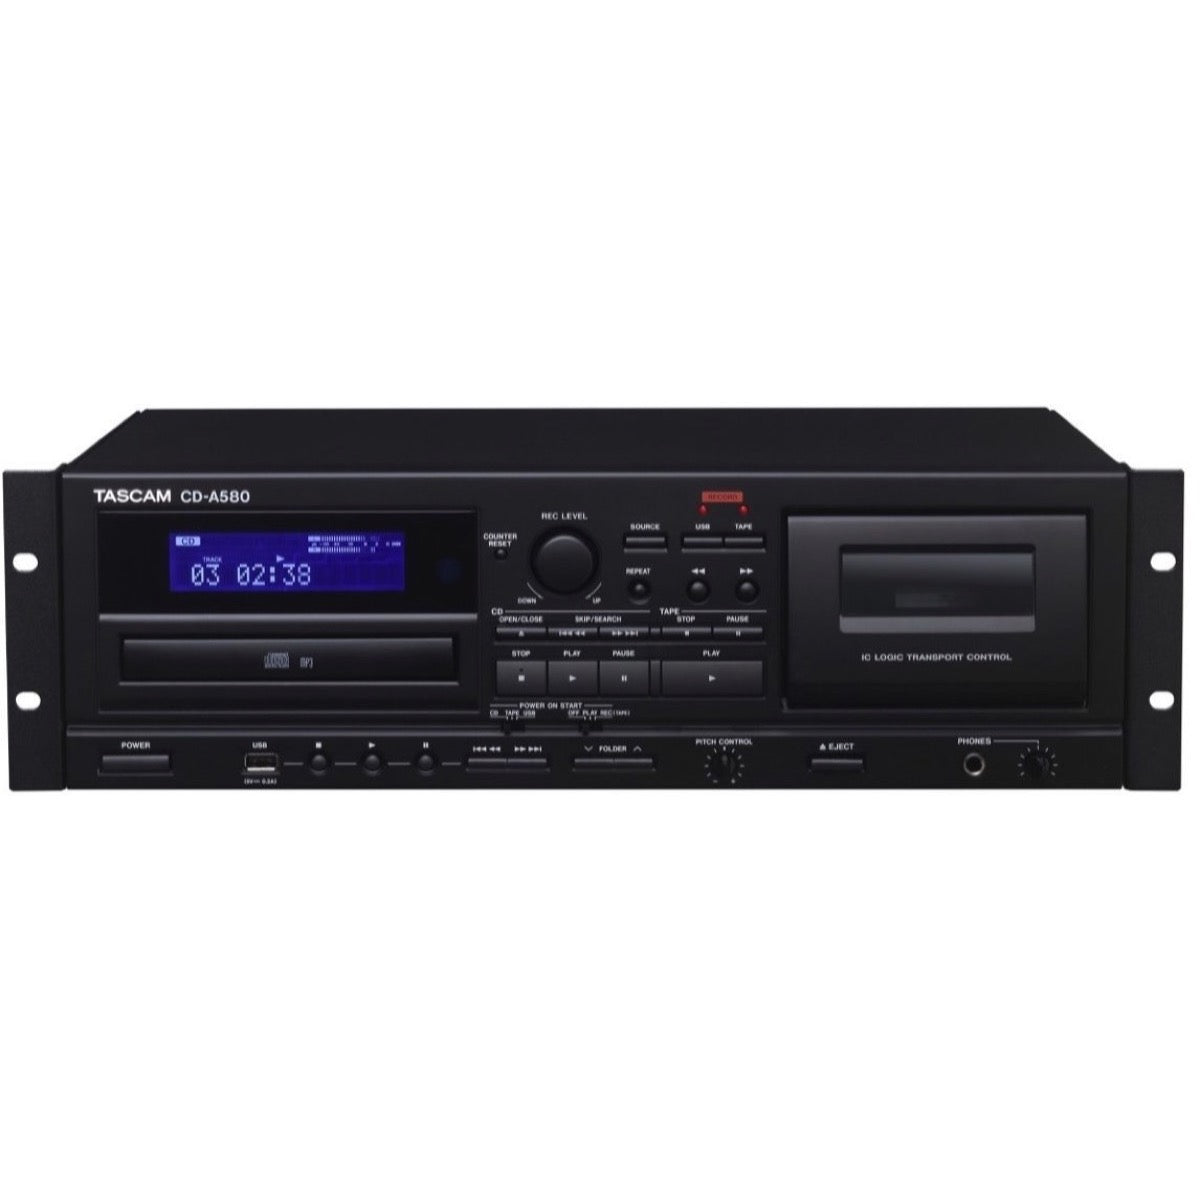 Tascam CD-A580 CassetteCDUSB MP3 Player Recorder